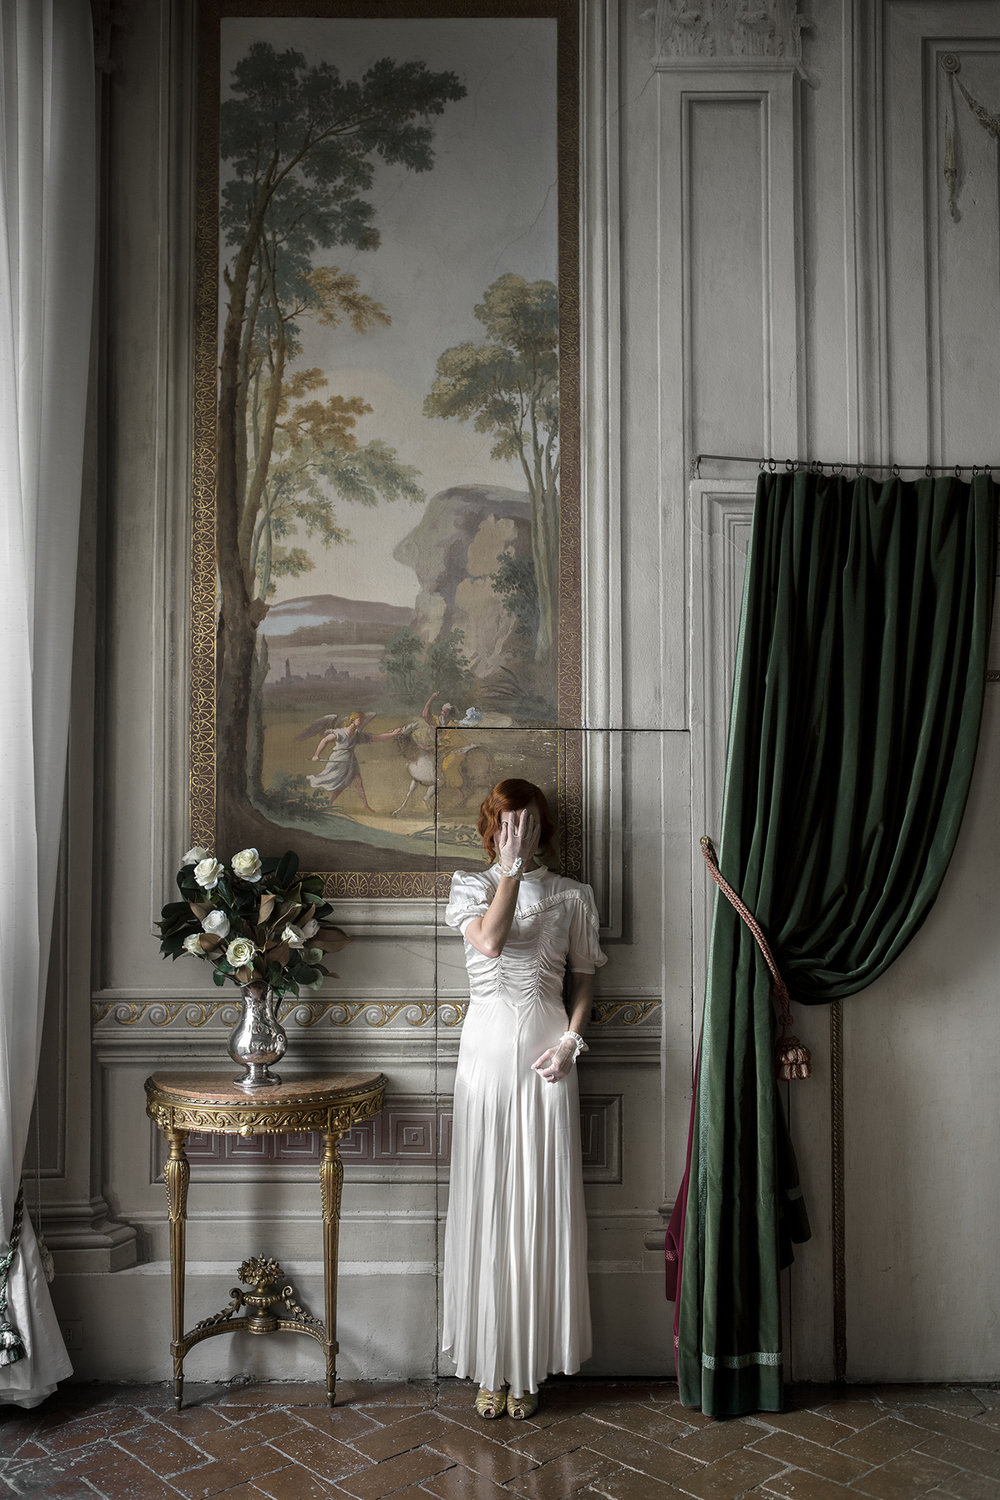 Intermission  from the series  The Woman Who Never Existed, 2016 , by  Anja Niemi , courtesy of  The Little Black Gallery